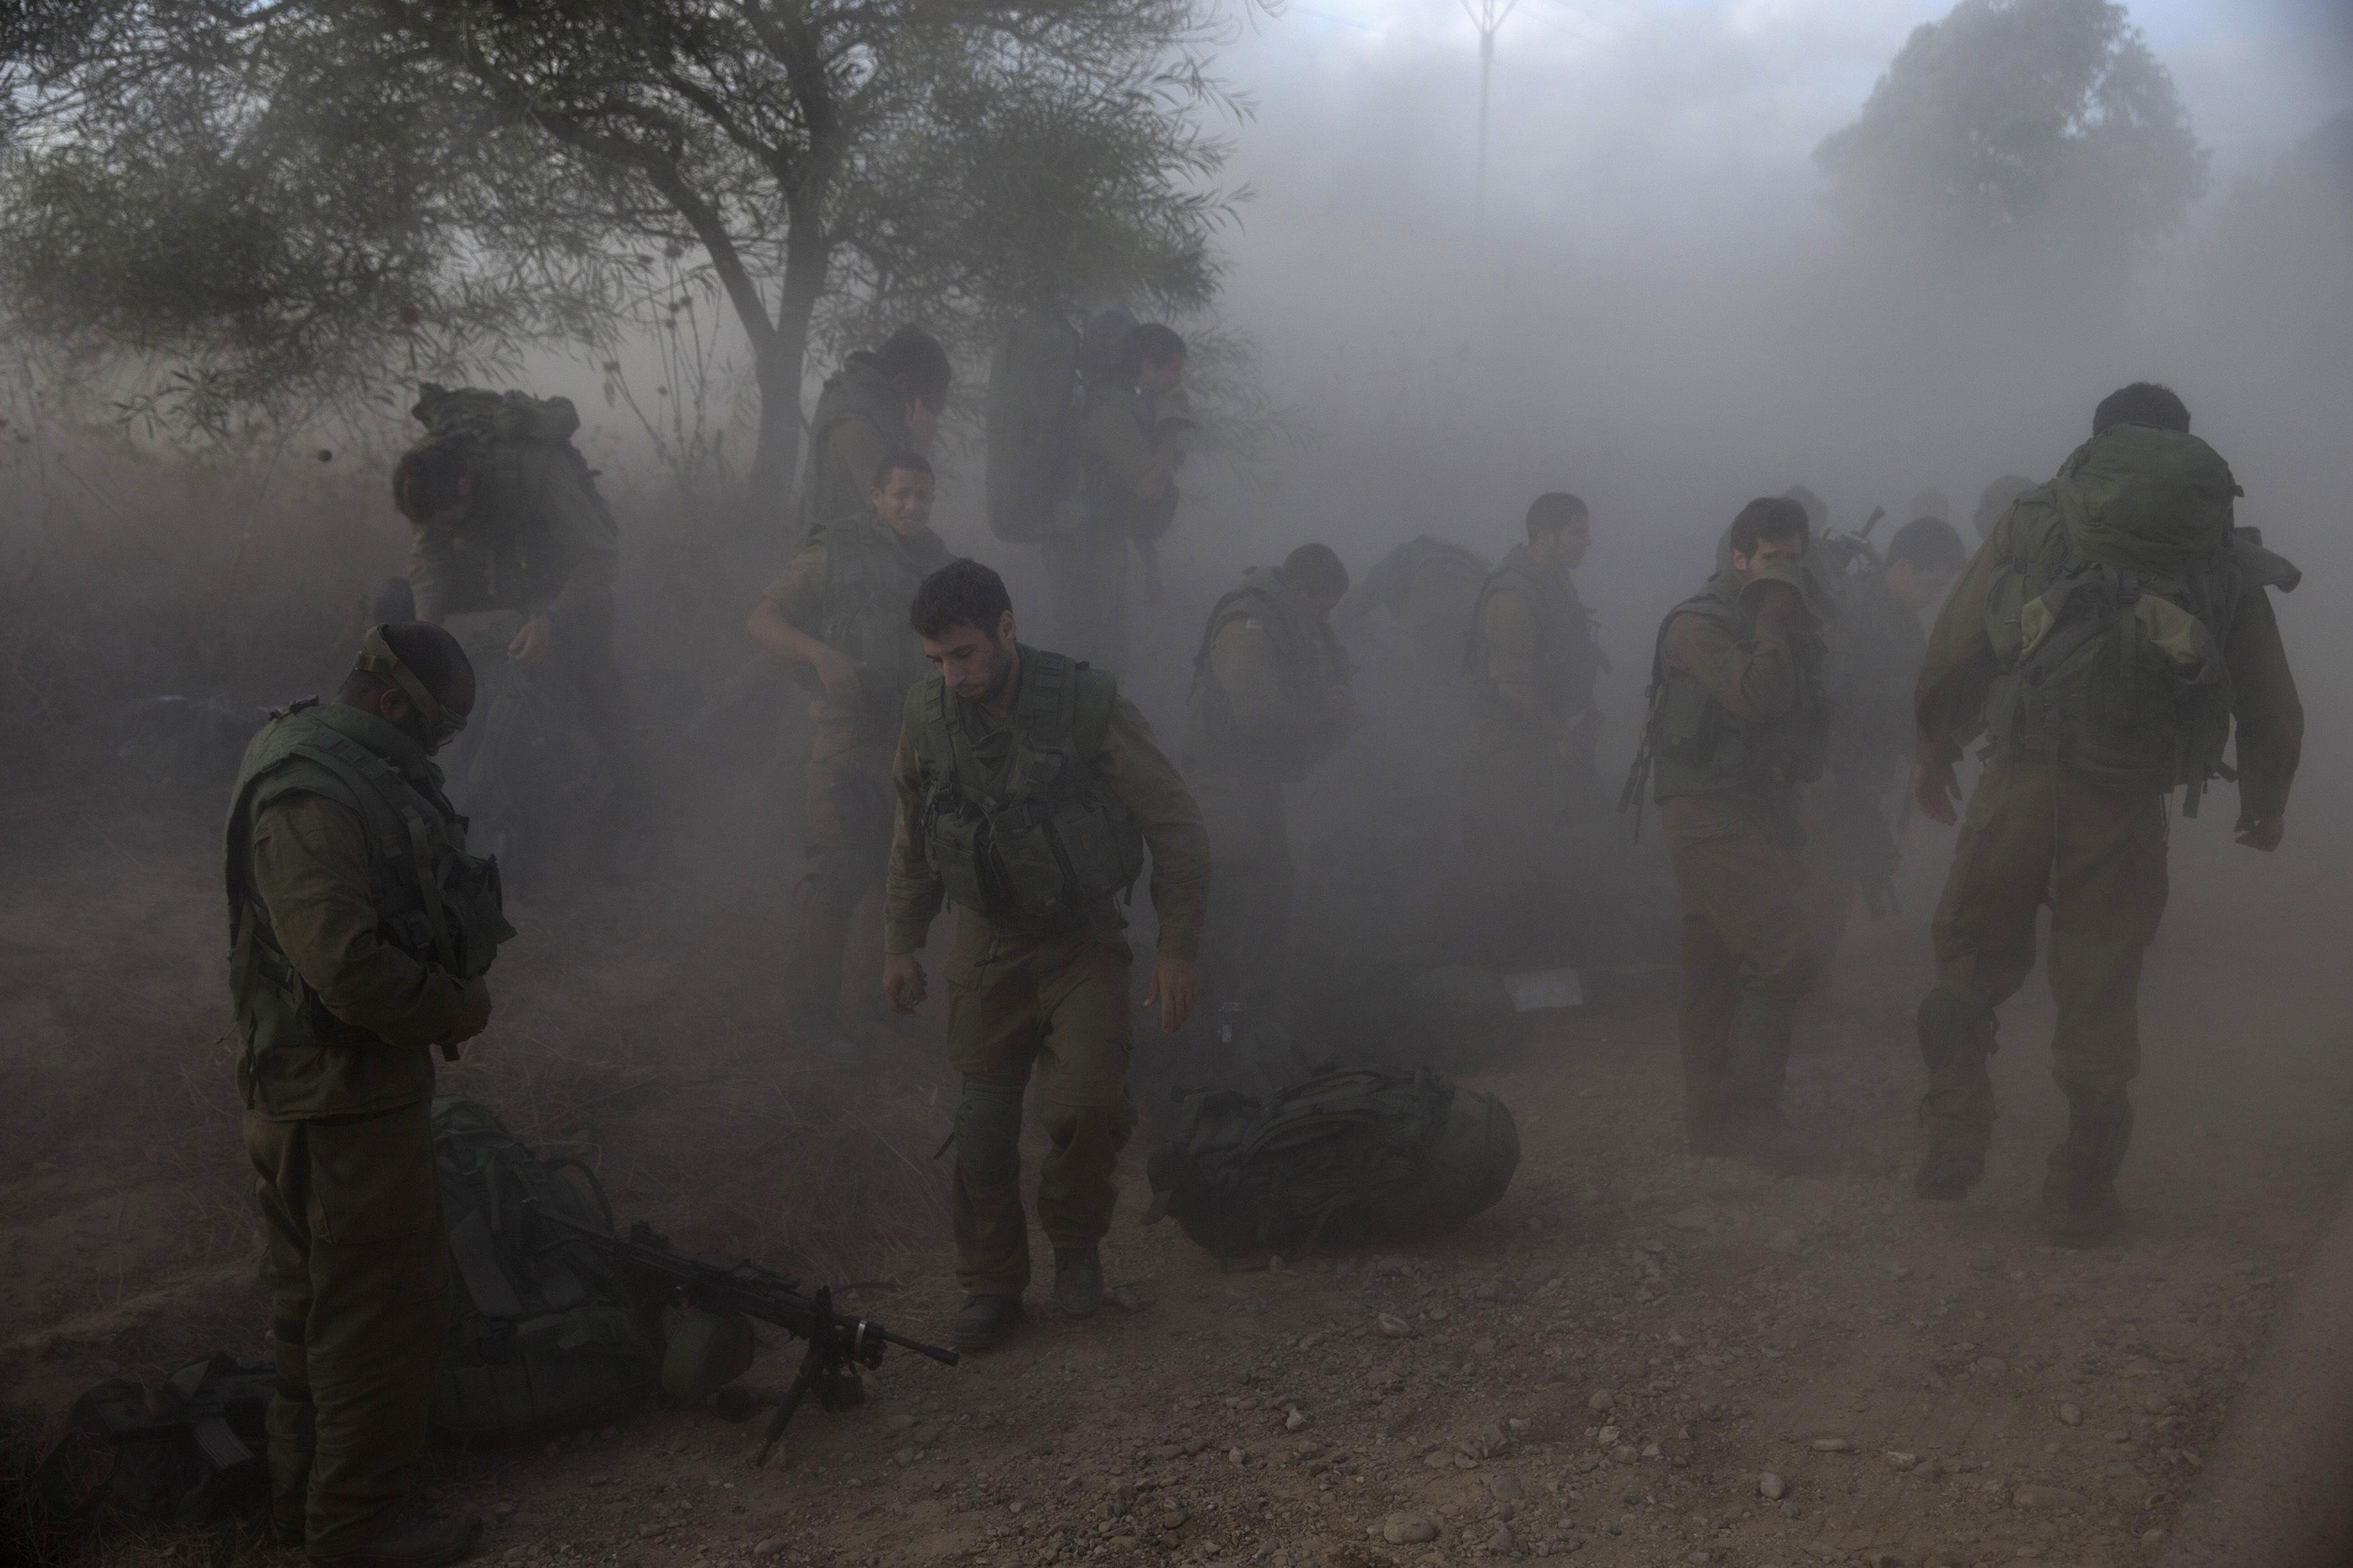 Israeli soldiers put on their gear on the side of a road across from the Gaza Strip on July 18, 2014.